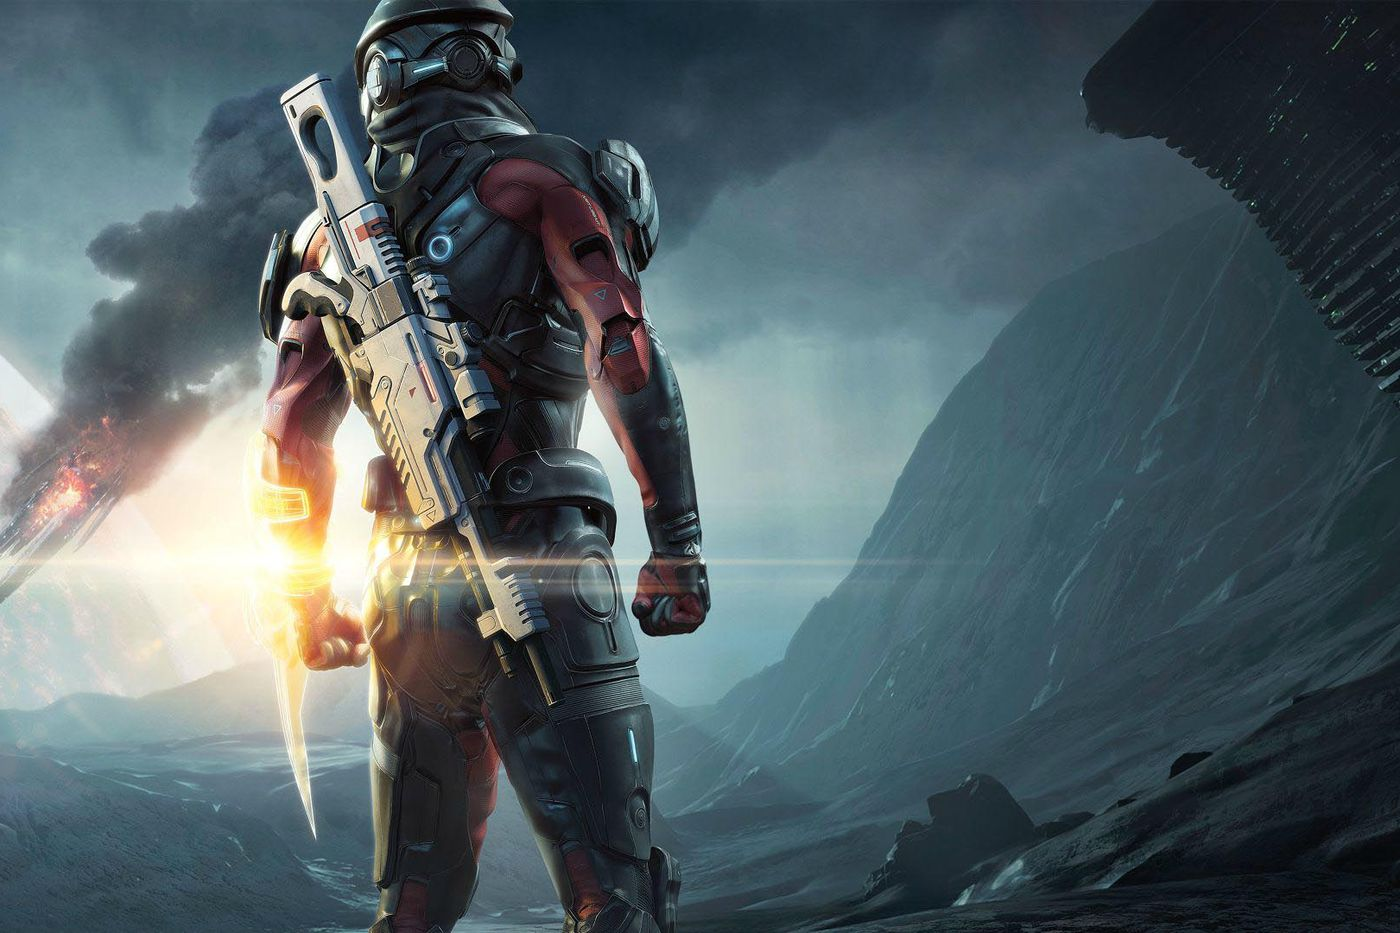 Mass Effect: Andromeda guide: Classes, profiles and skill